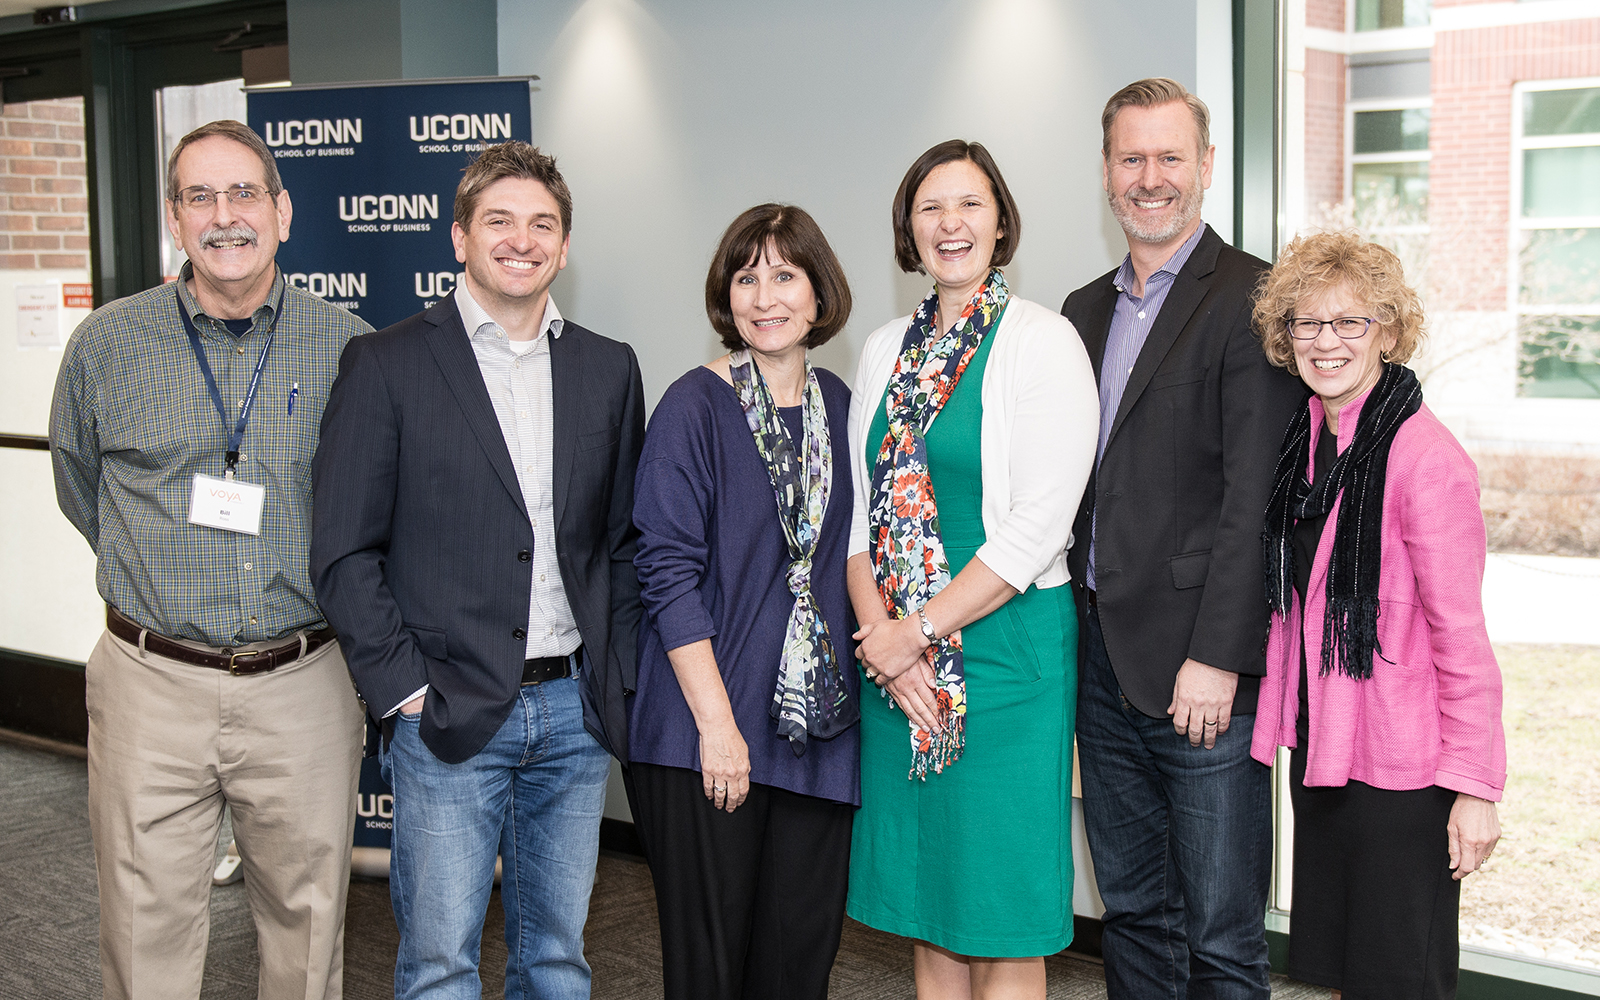 From left: Bill Ross, Remi Trudel, Jennifer Escalas, Karen Winterich, Mark Forehand, and Robin Coulter (Nathan Oldham/UConn School of Business)